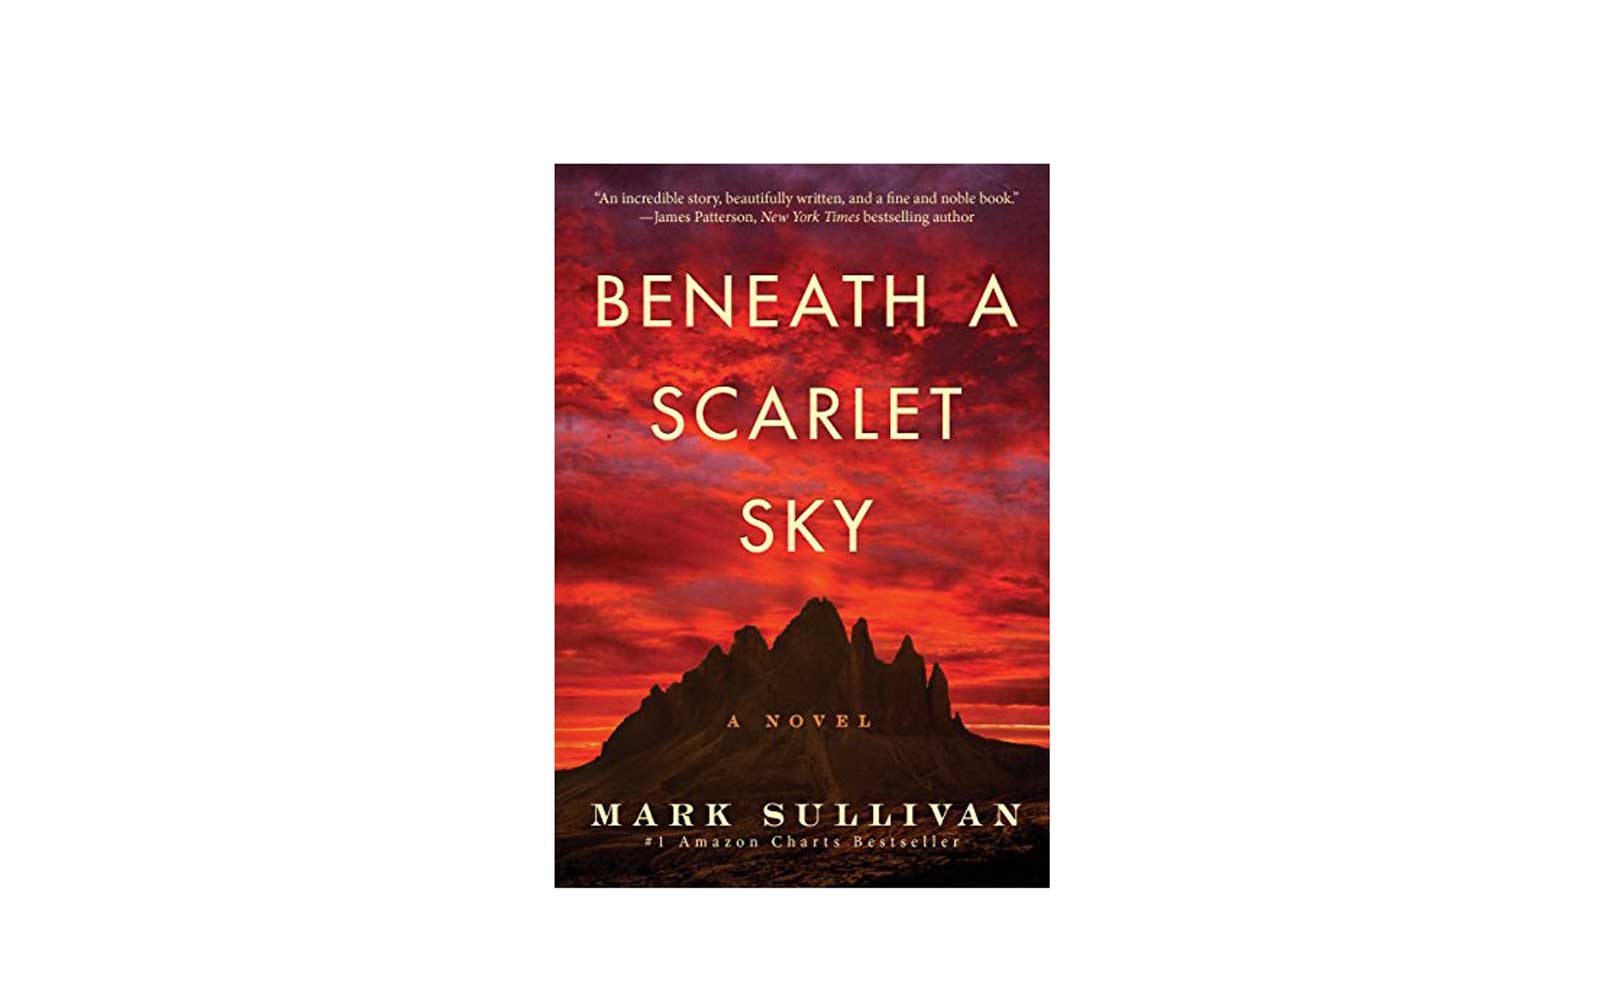 20 most popular Kindle books 2017 Beneath a Scarlet Sky